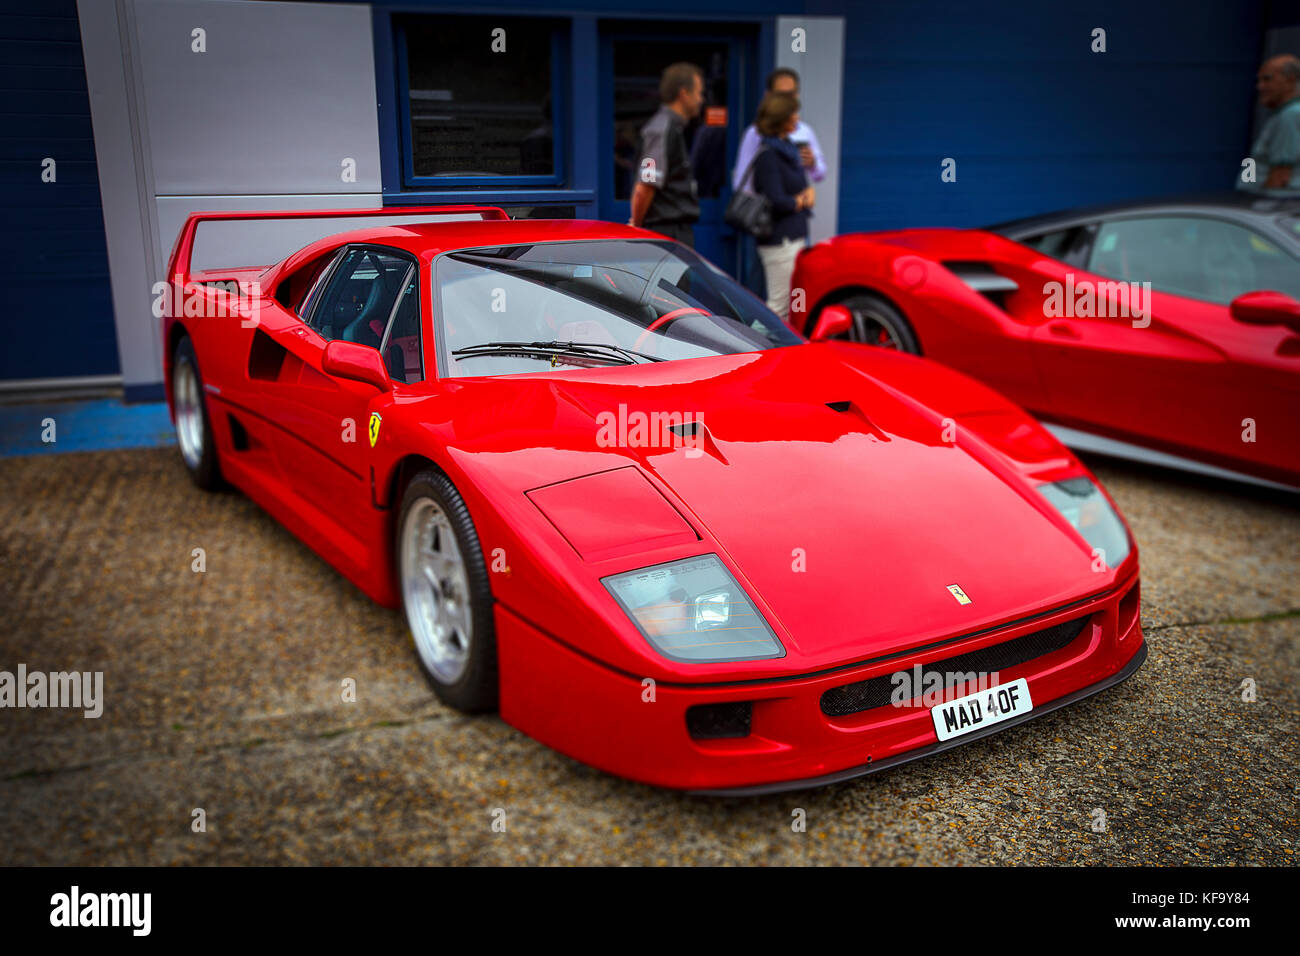 The Ferrari F40 is a mid-engine, rear-wheel drive, two-door